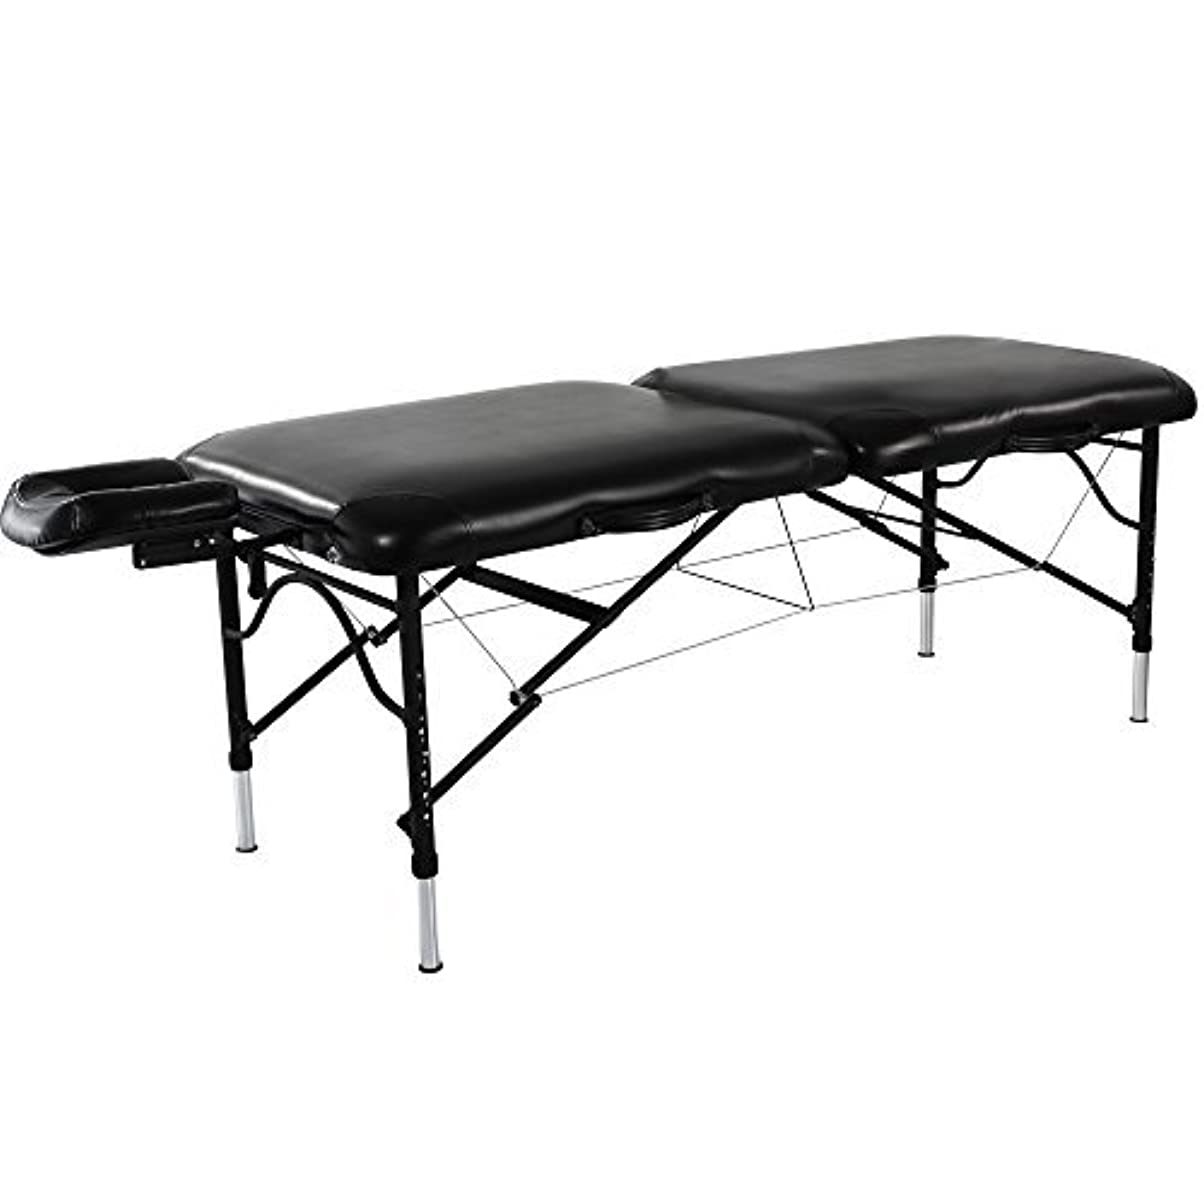 カフェテリアインシデントみなさんMaster Massage Stratomaster Ultralight Portable Massage Table Black 30 Inch [並行輸入品]